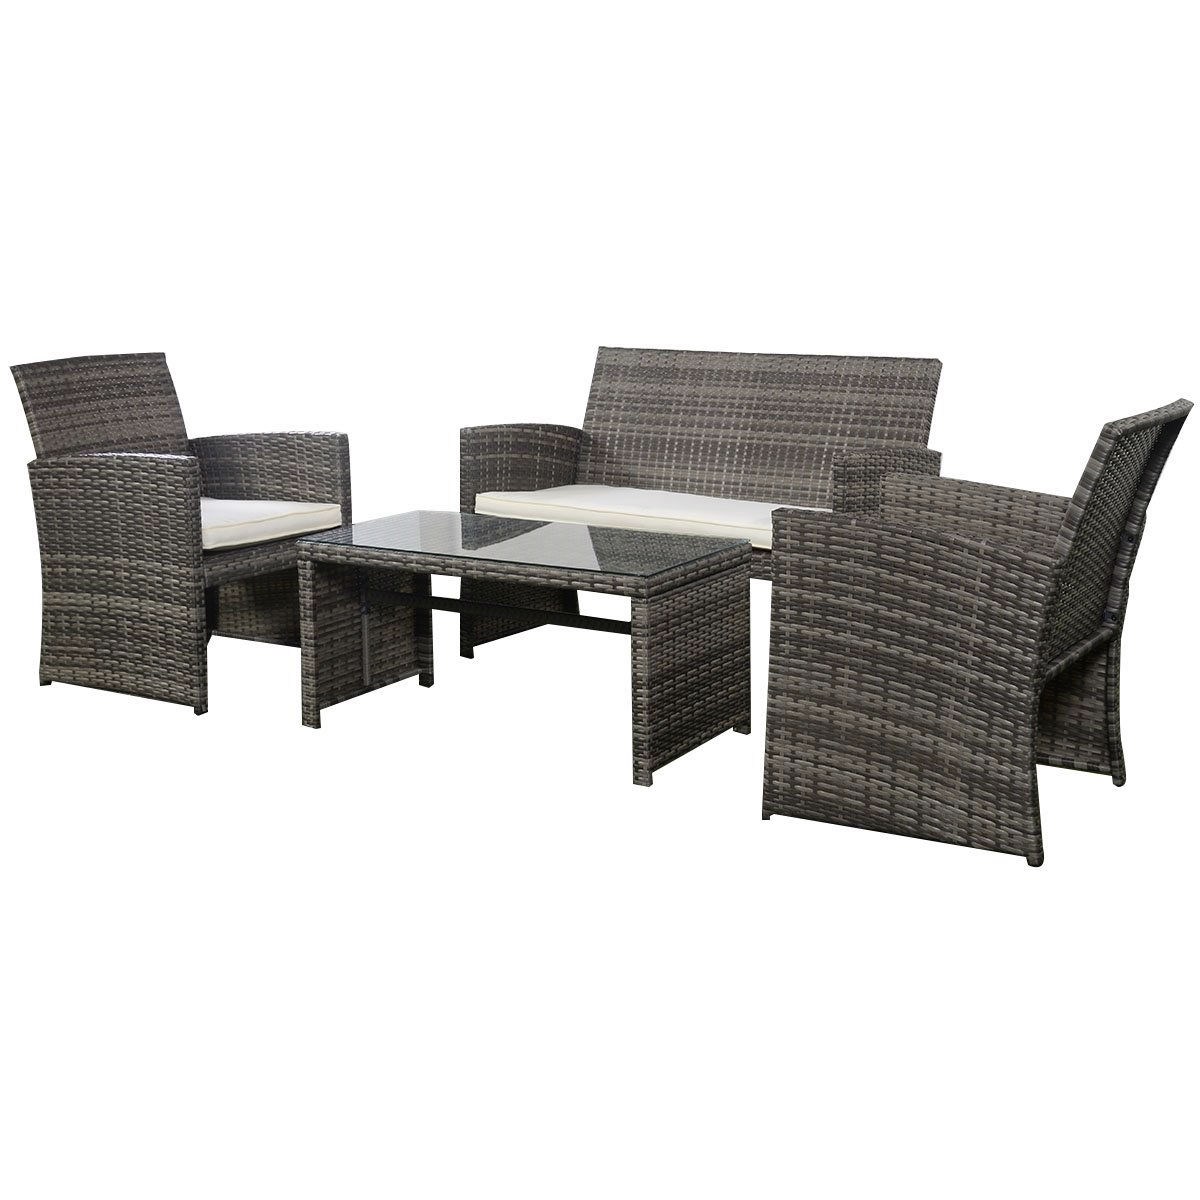 Grey Resin Wicker Rattan 4 Piece Patio Furniture Set With Seat Cushions Fastfurnishings